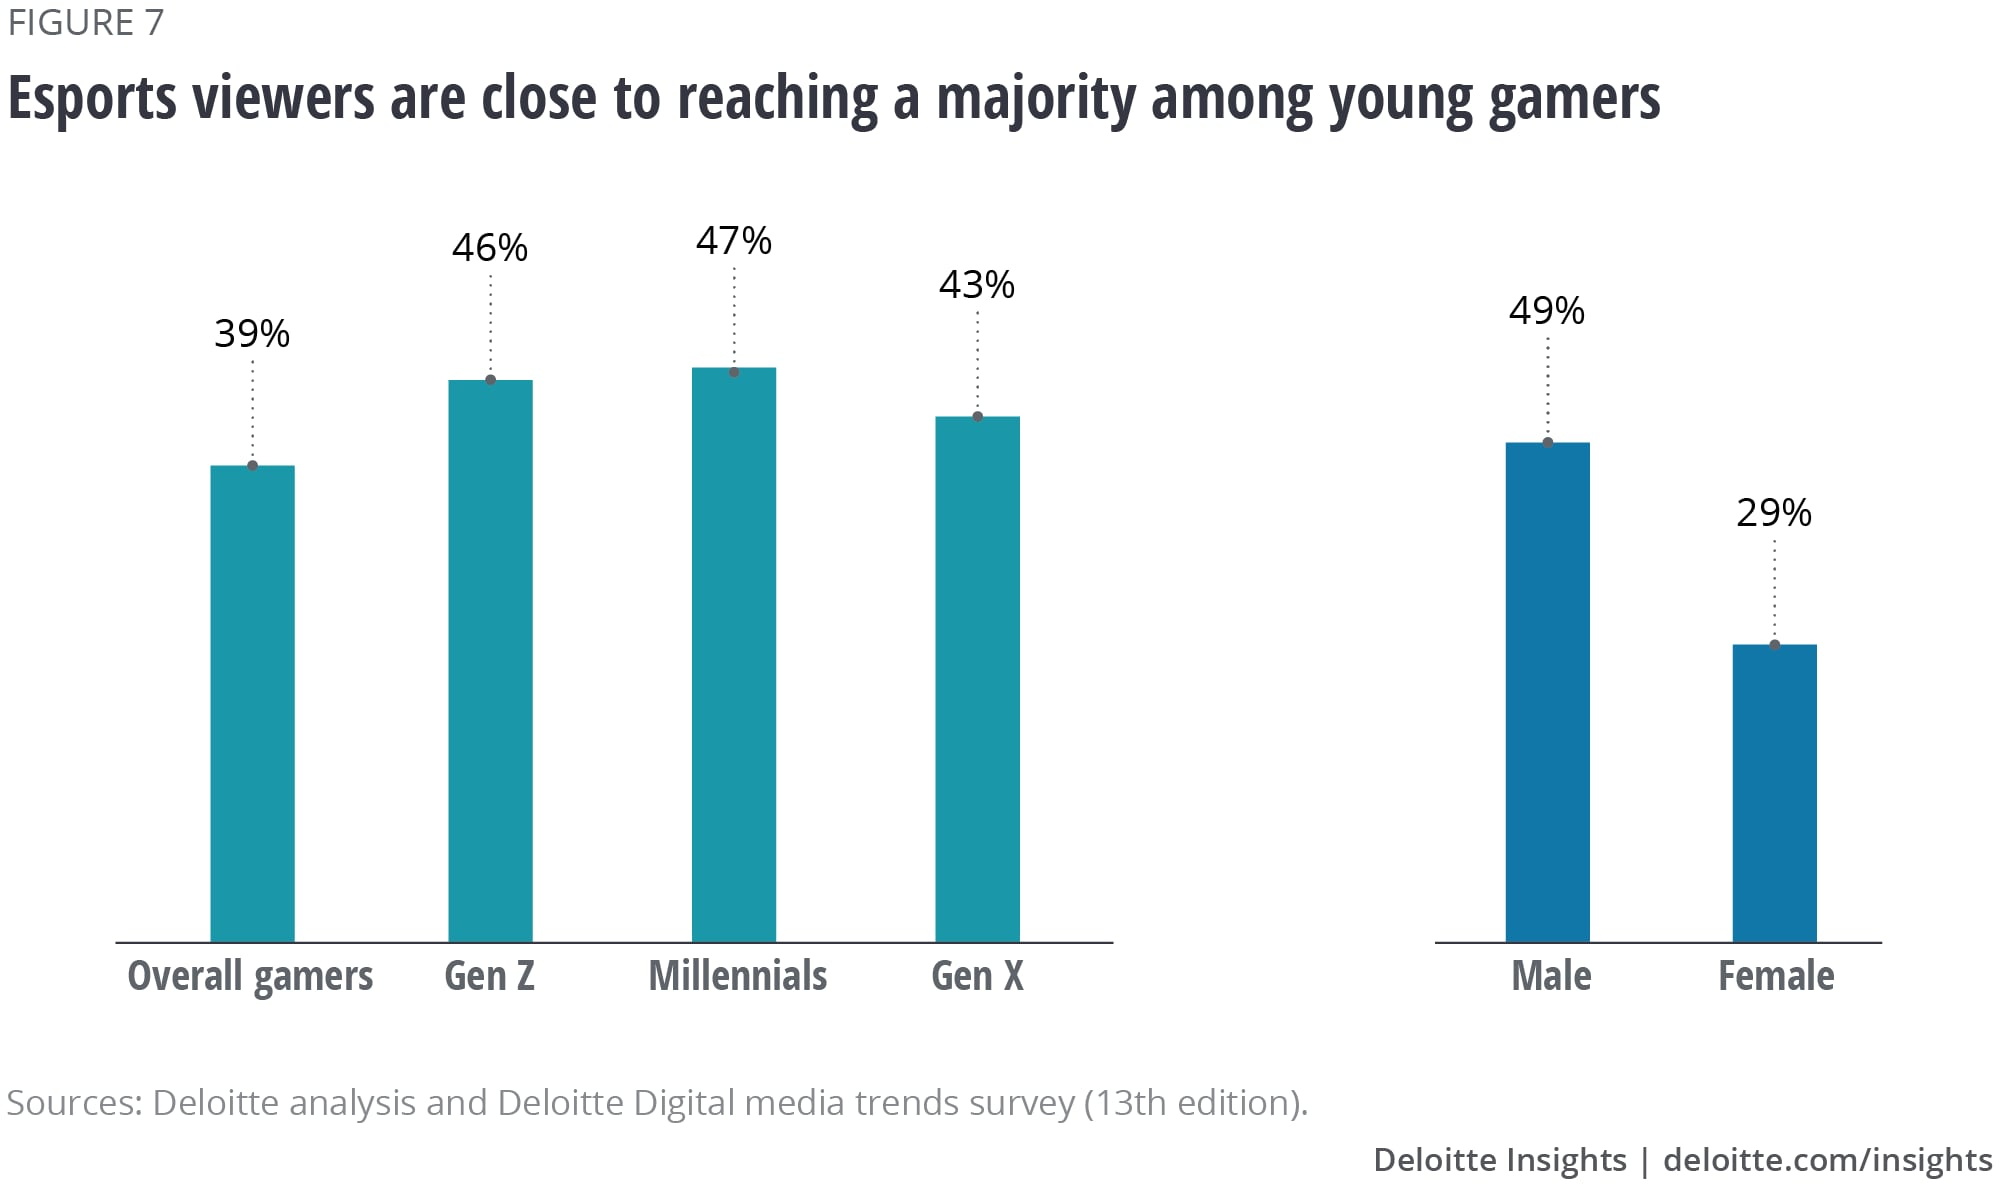 Esports viewers are close to reaching a majority among young gamers